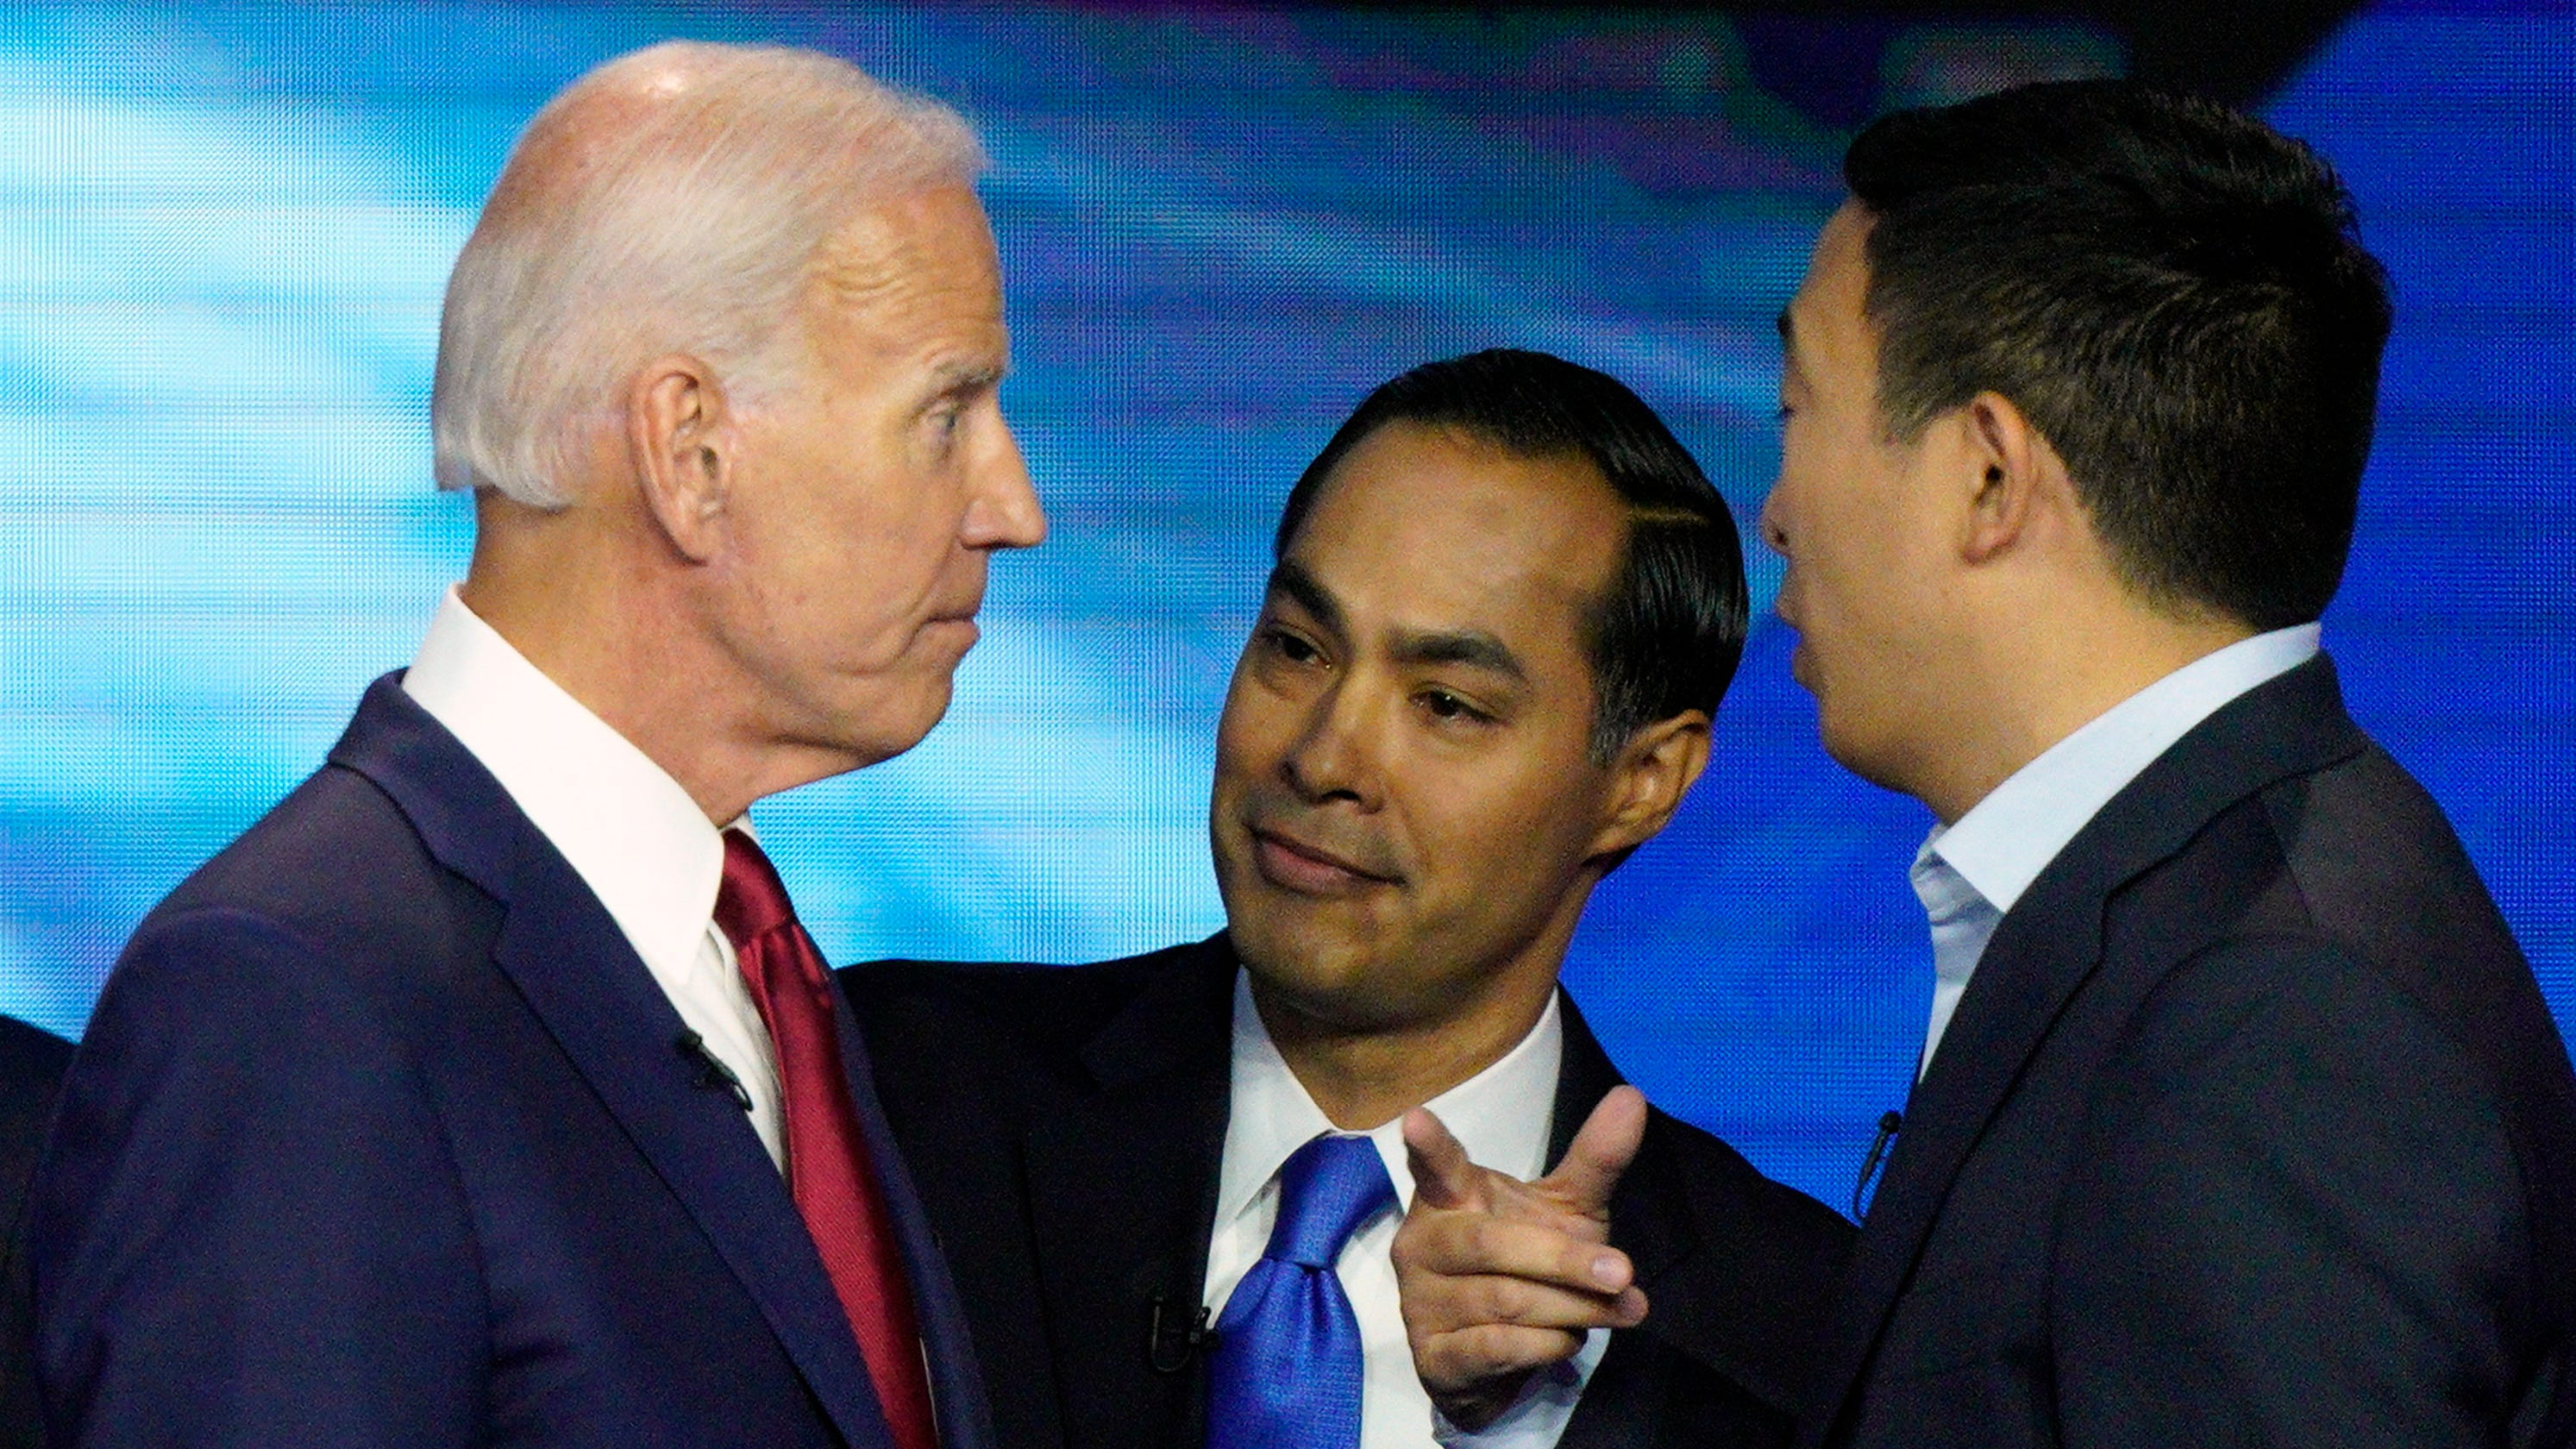 Julian Castro is no ageist, he's just practicing presidential politics while Hispanic